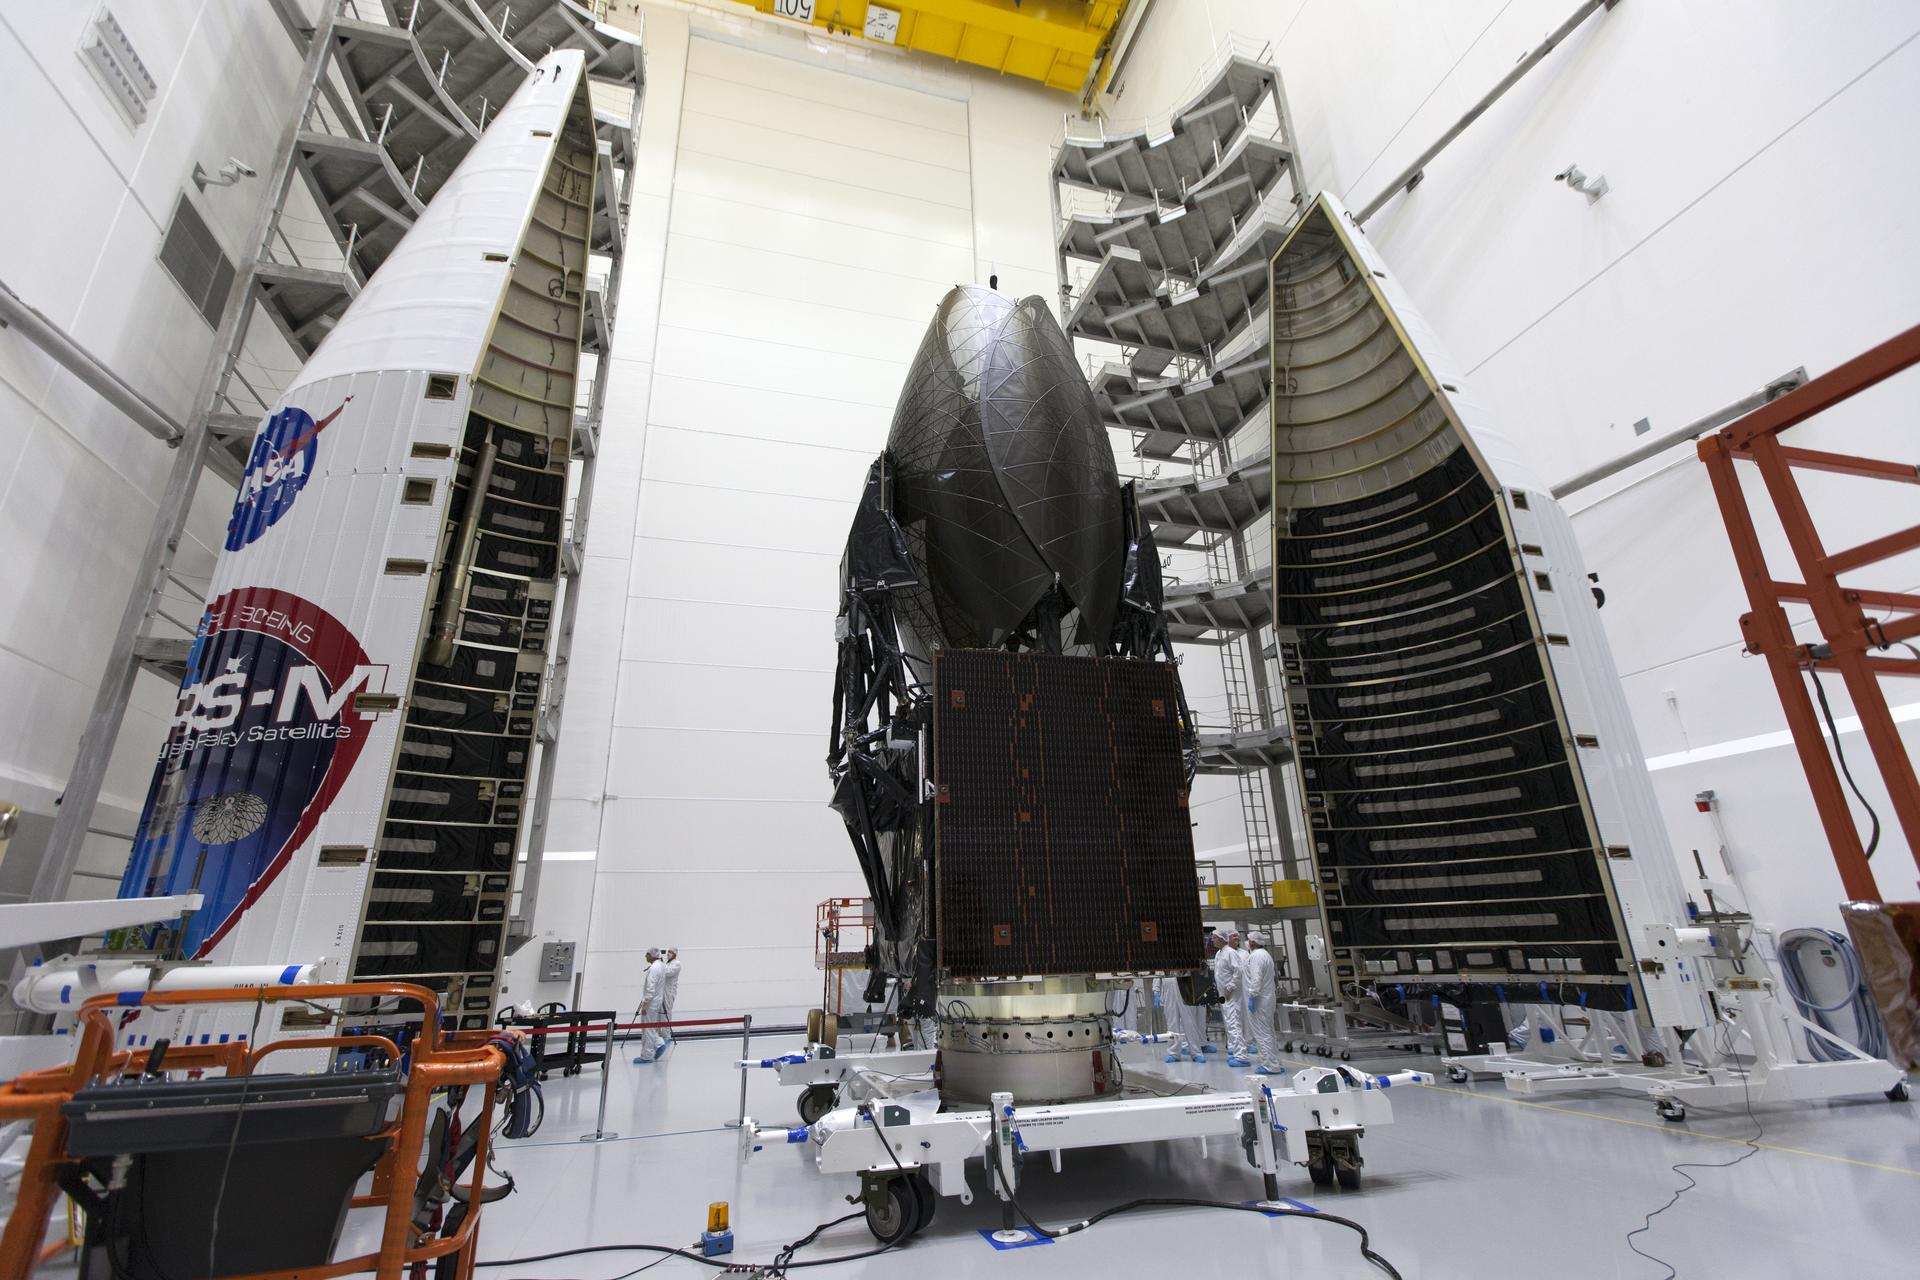 Boeing-Built Satellite Completes NASA's Space Communications Network